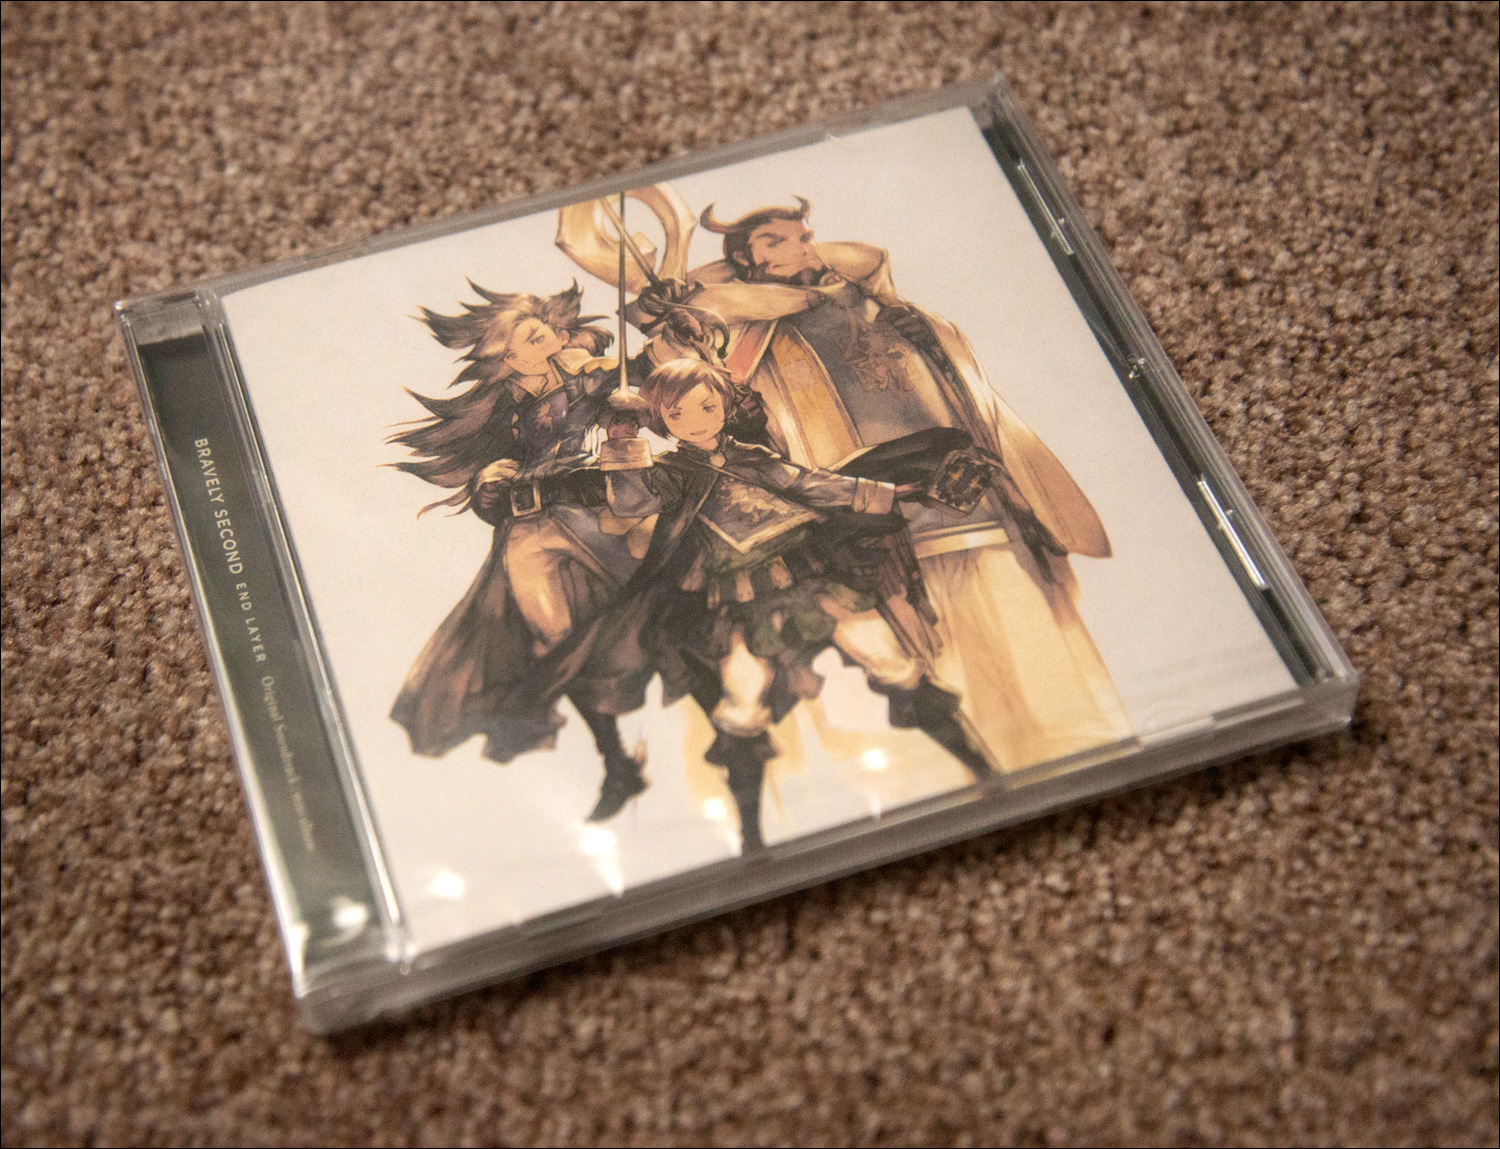 Bravely-Second-End-Layer-Deluxe-Collector's-Edition-Soundtrack